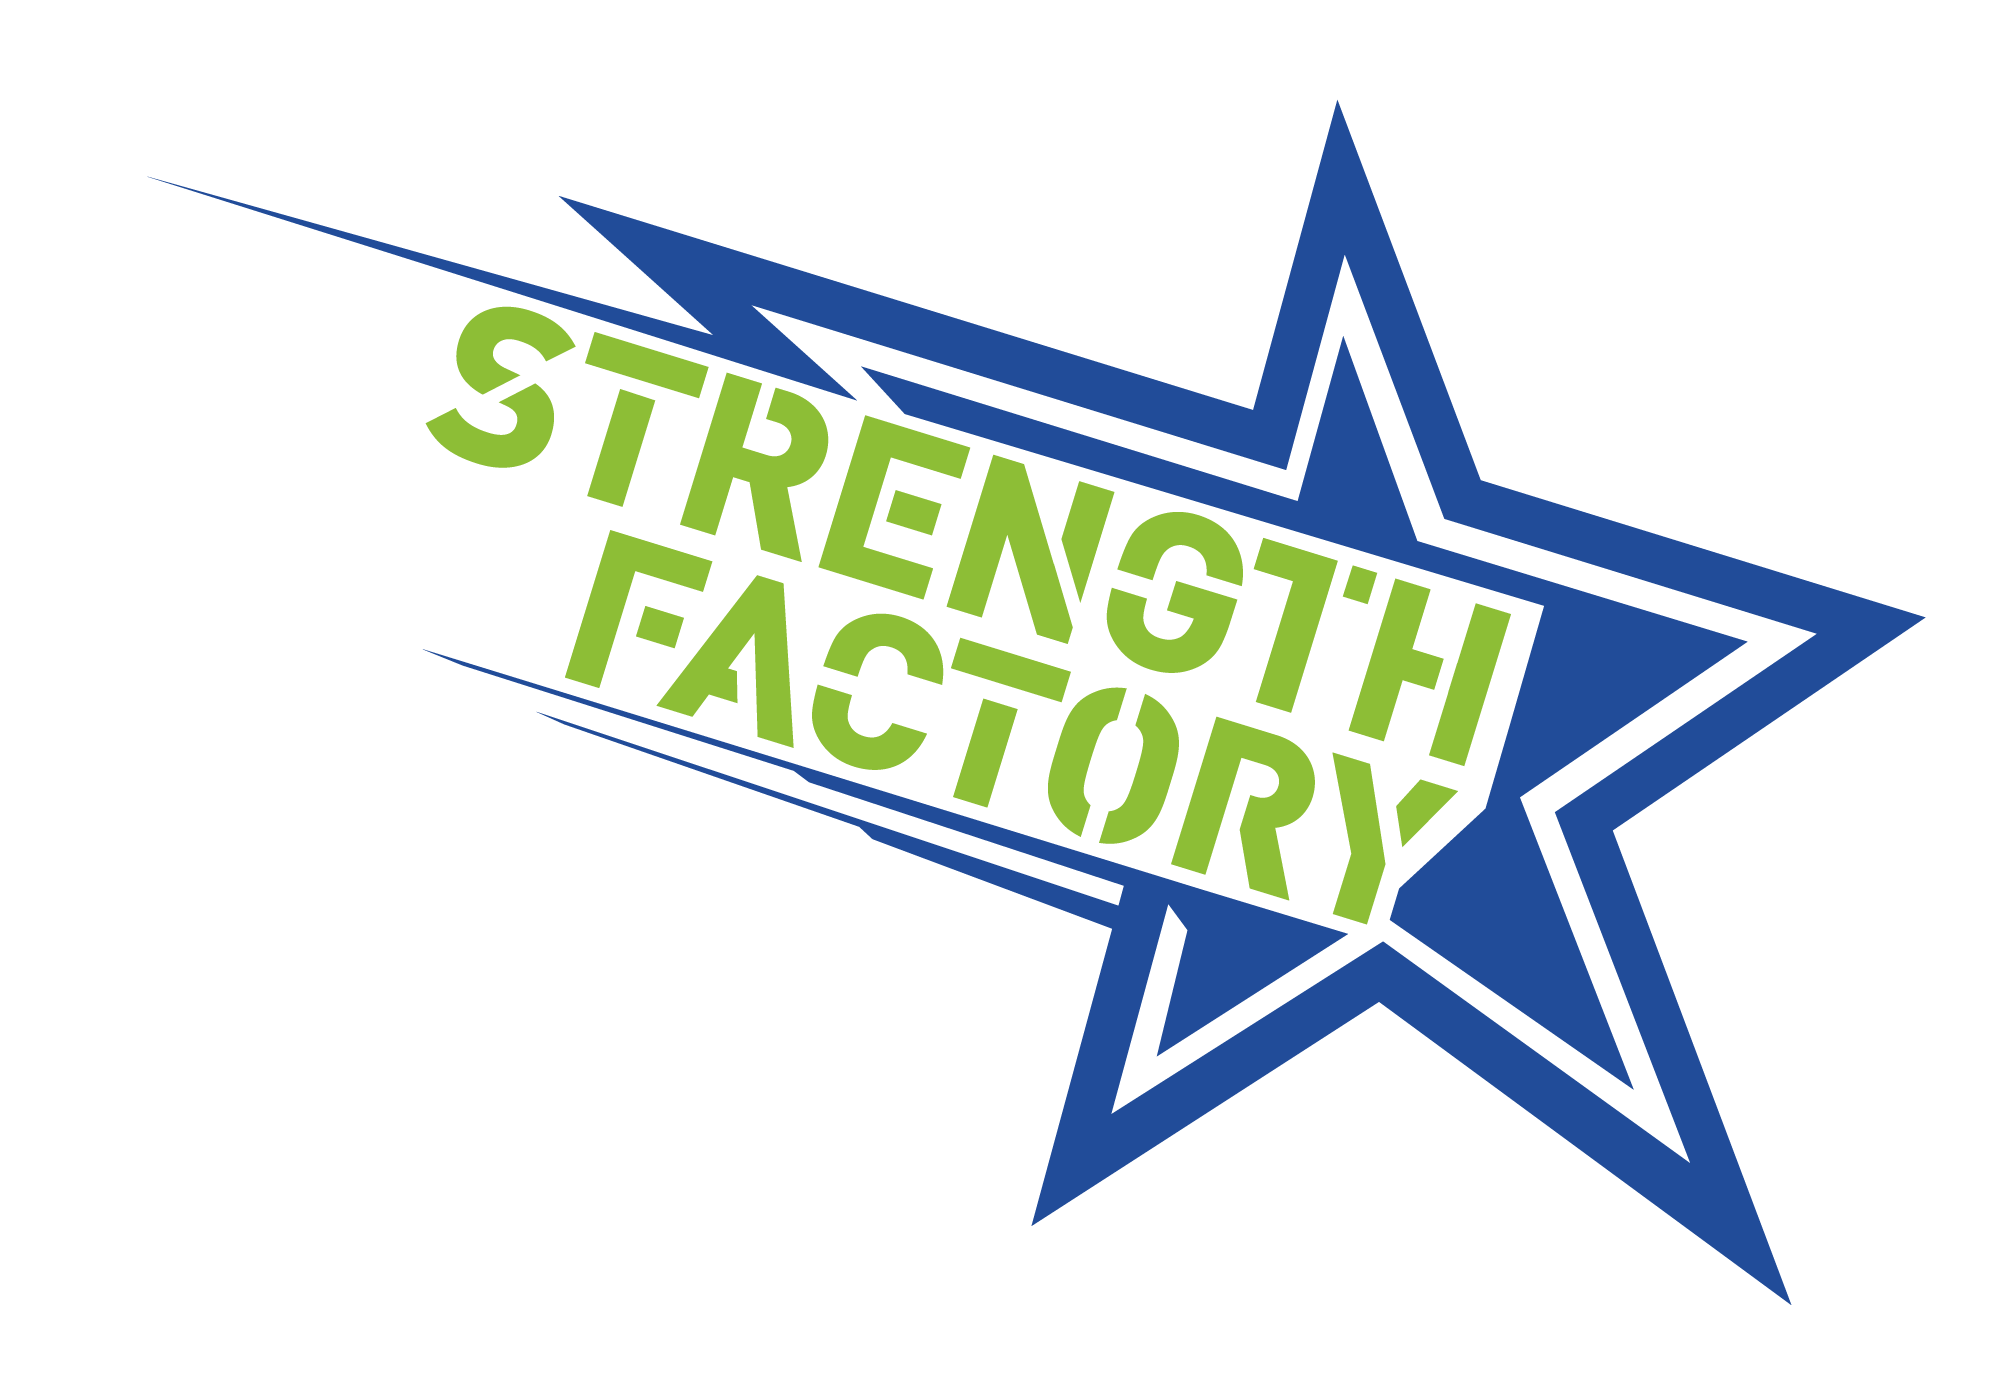 The Strength Factory